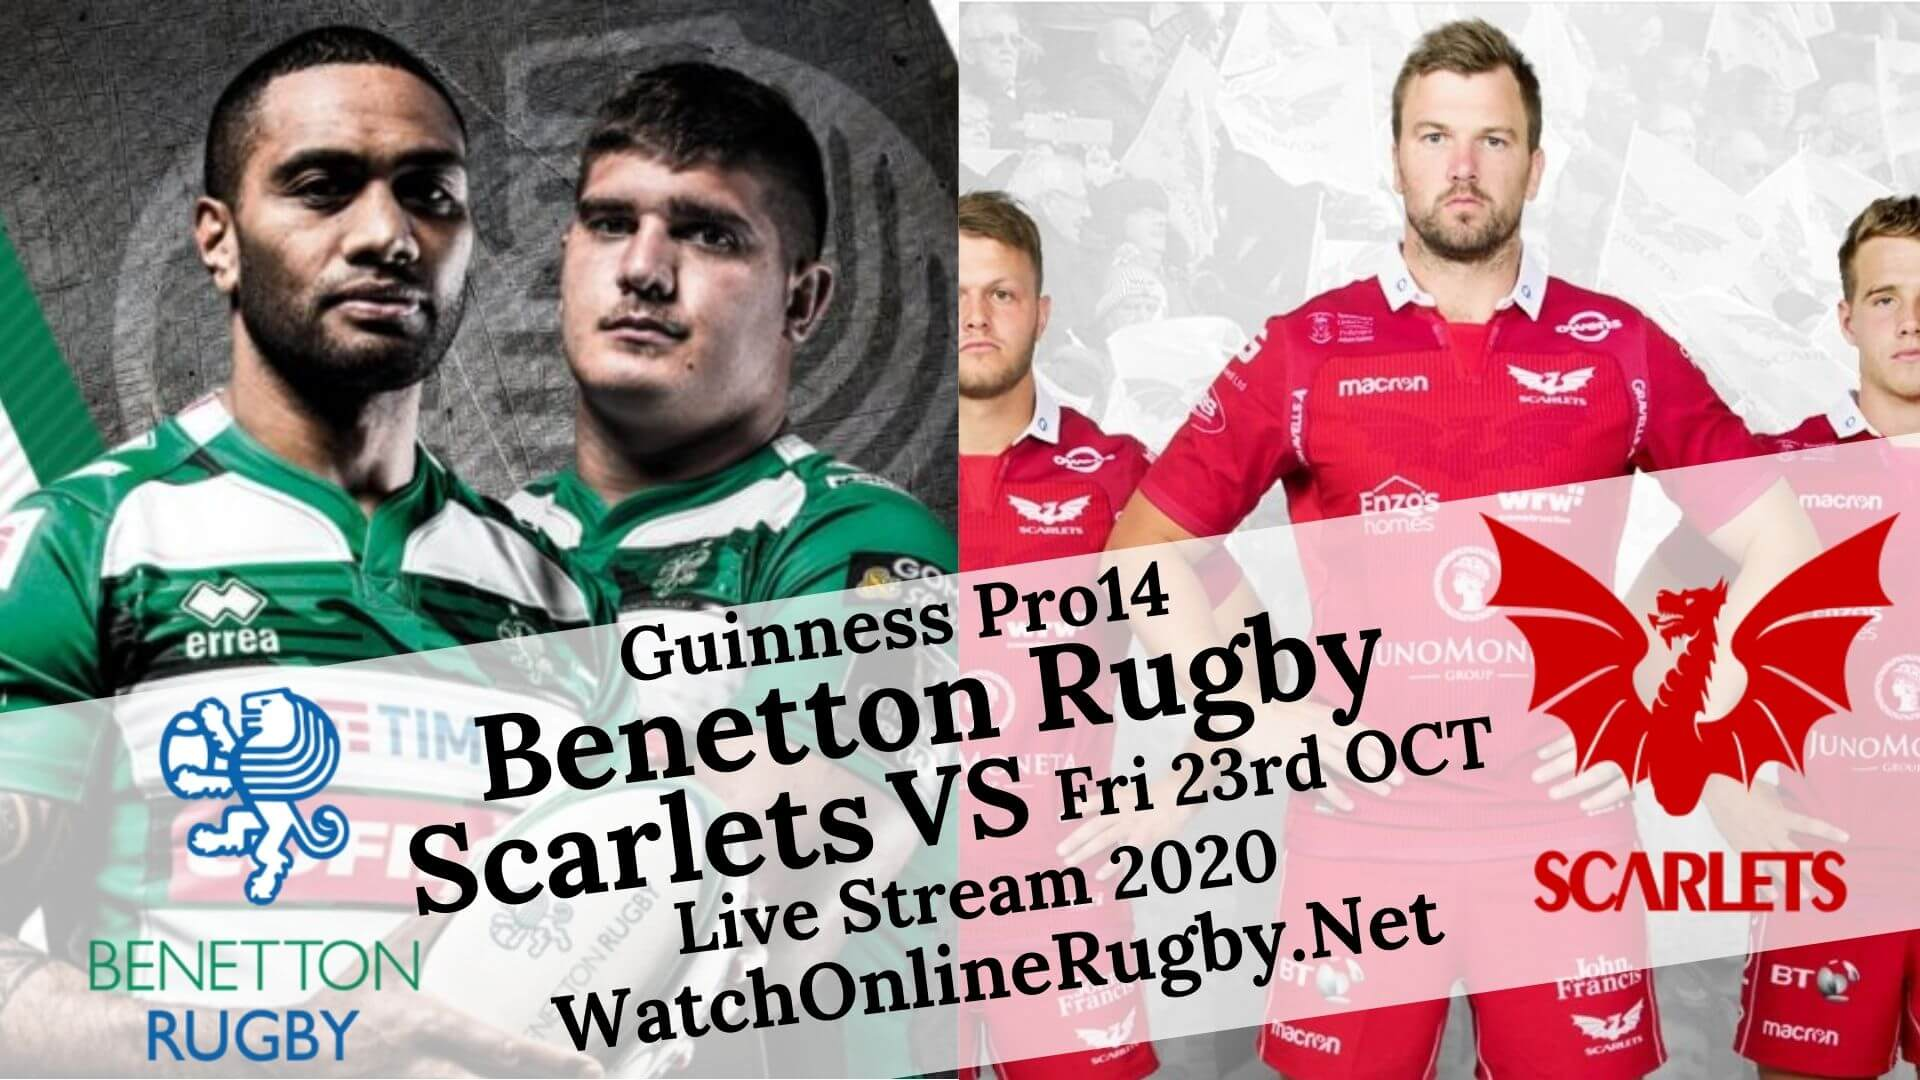 scarlets-vs-benetton-rugby-hd-live